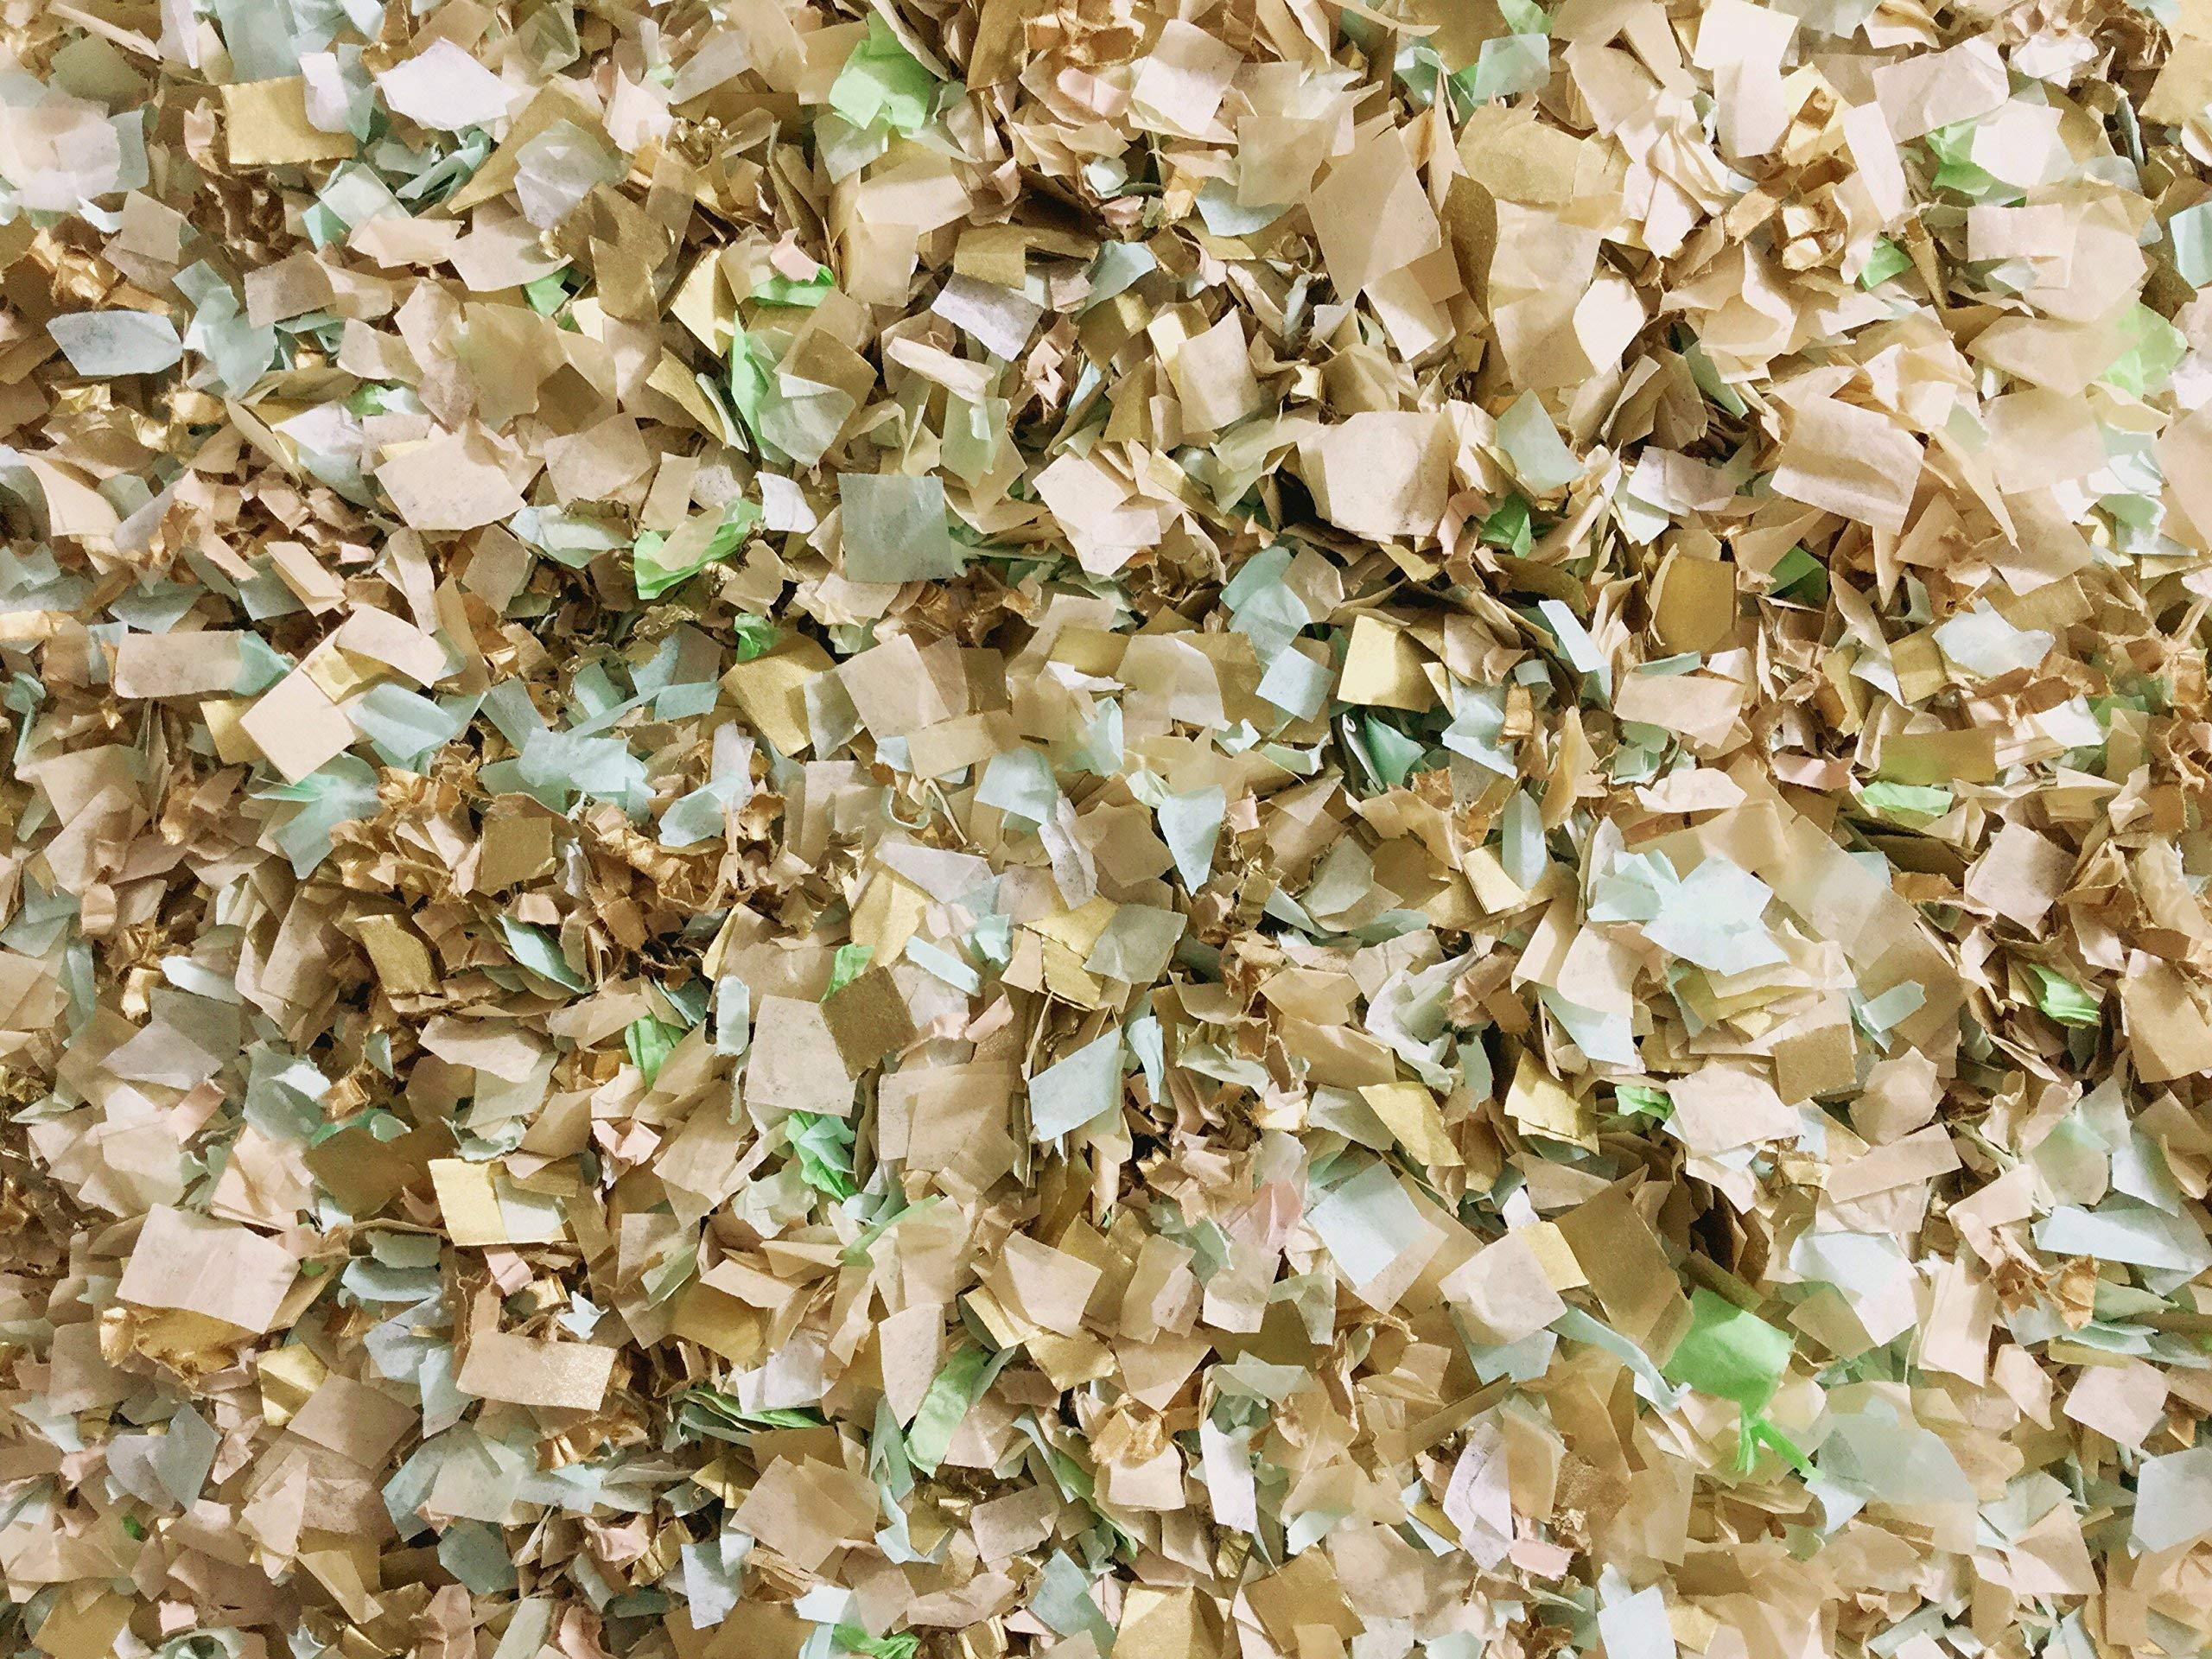 Mint Ivory Gold Biodegradable Confetti Mix Wedding Bridal Shower Party Decorations Bulk Wholesale Throwing Send Off Table Decor InsideMyNest (25 Handfuls)